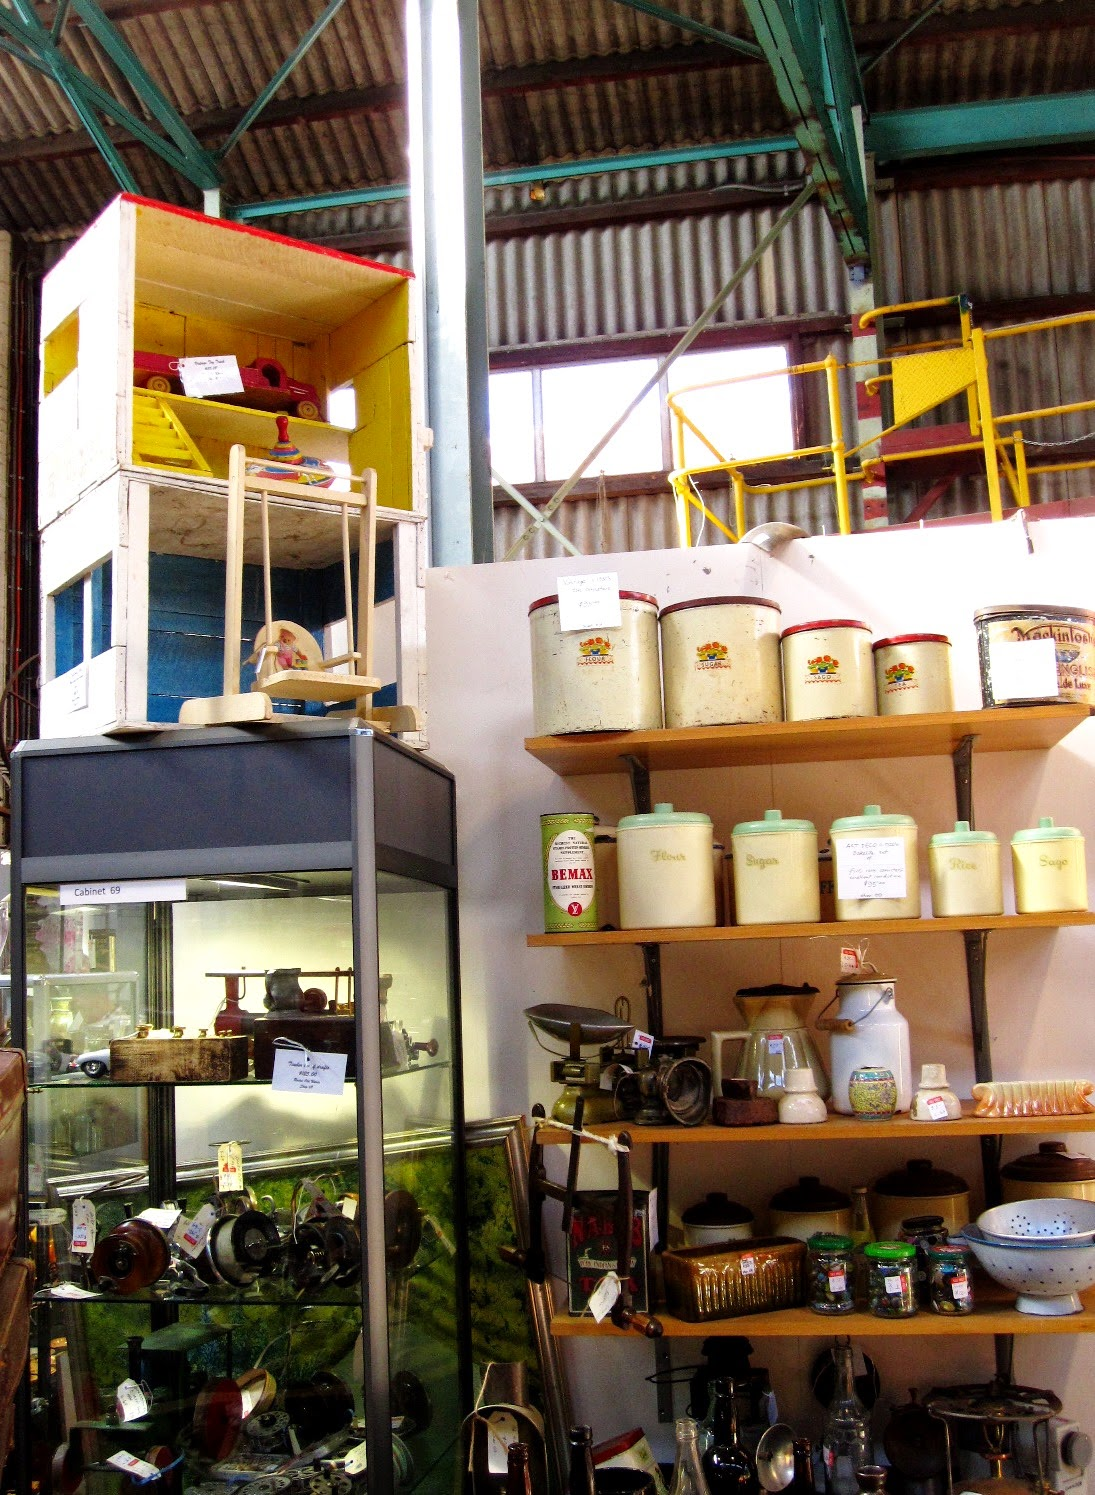 Vintage dolls house made of two packing crates on their sides, painted white on the outside and bright blue and yellow inside, displayed on the top of a tall display cabinet.